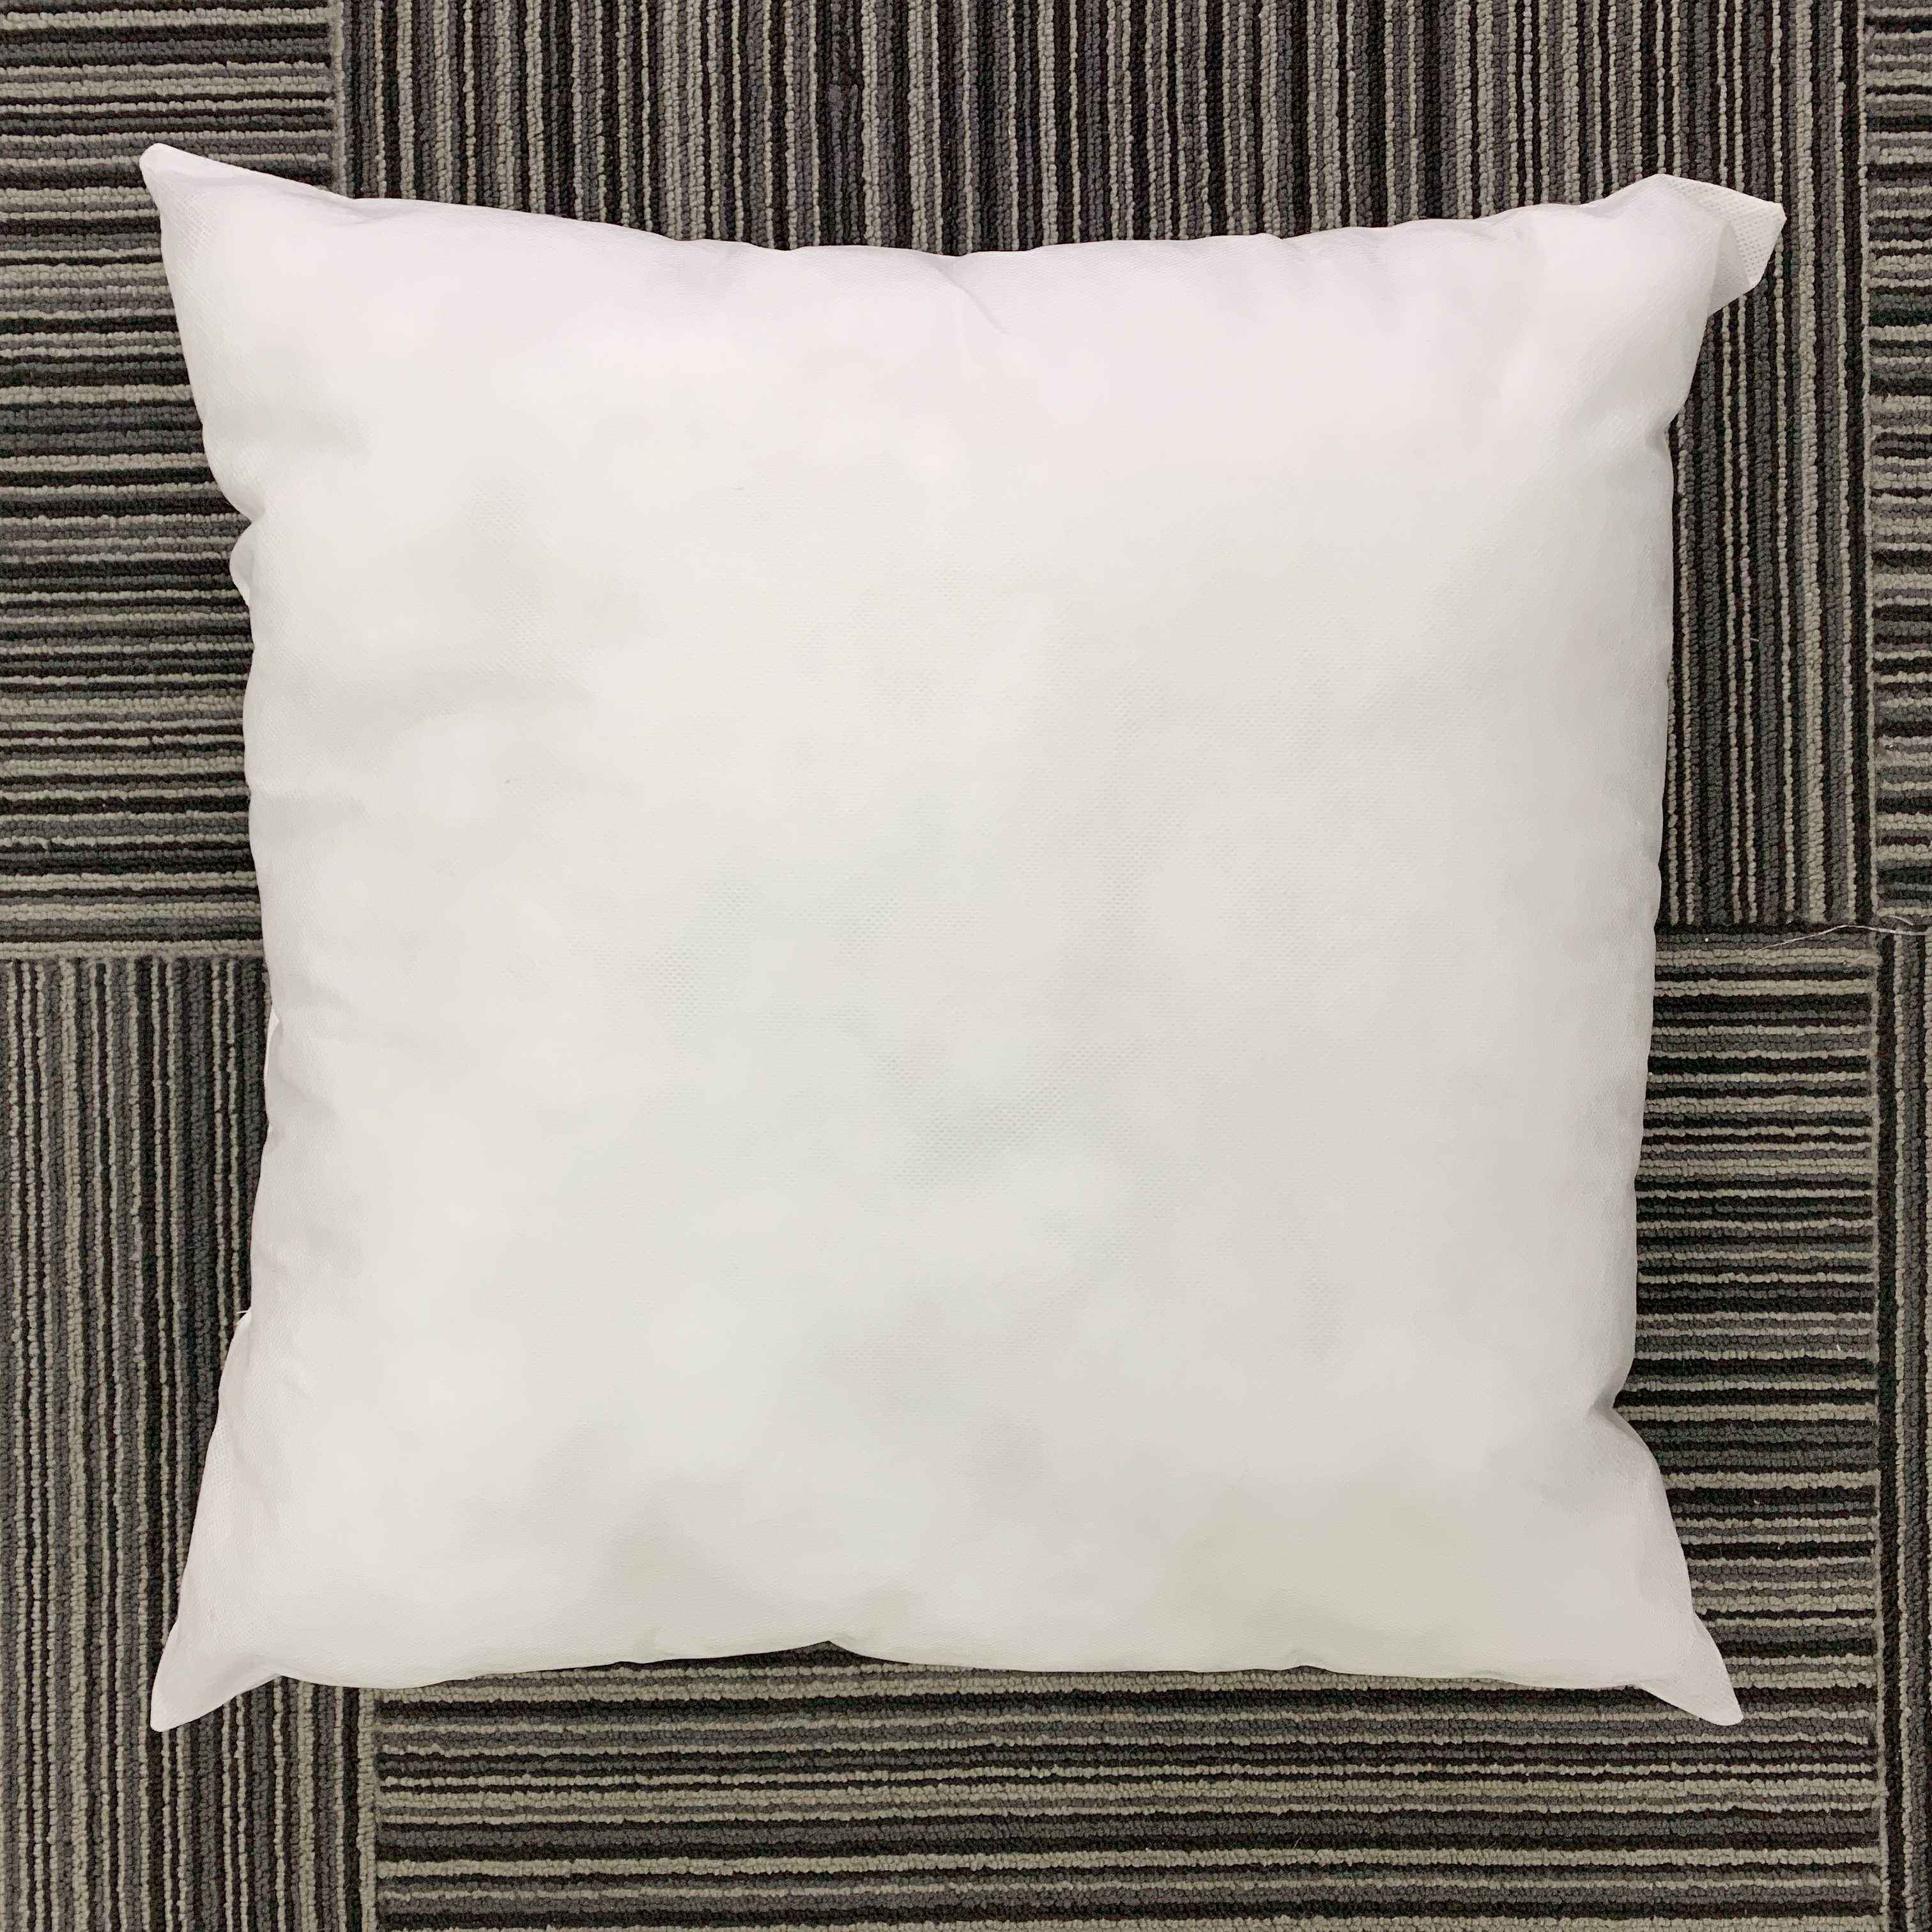 Cushion Filler Pads 100/% Natural Duck Feather Inners Scatter Inserts Filling